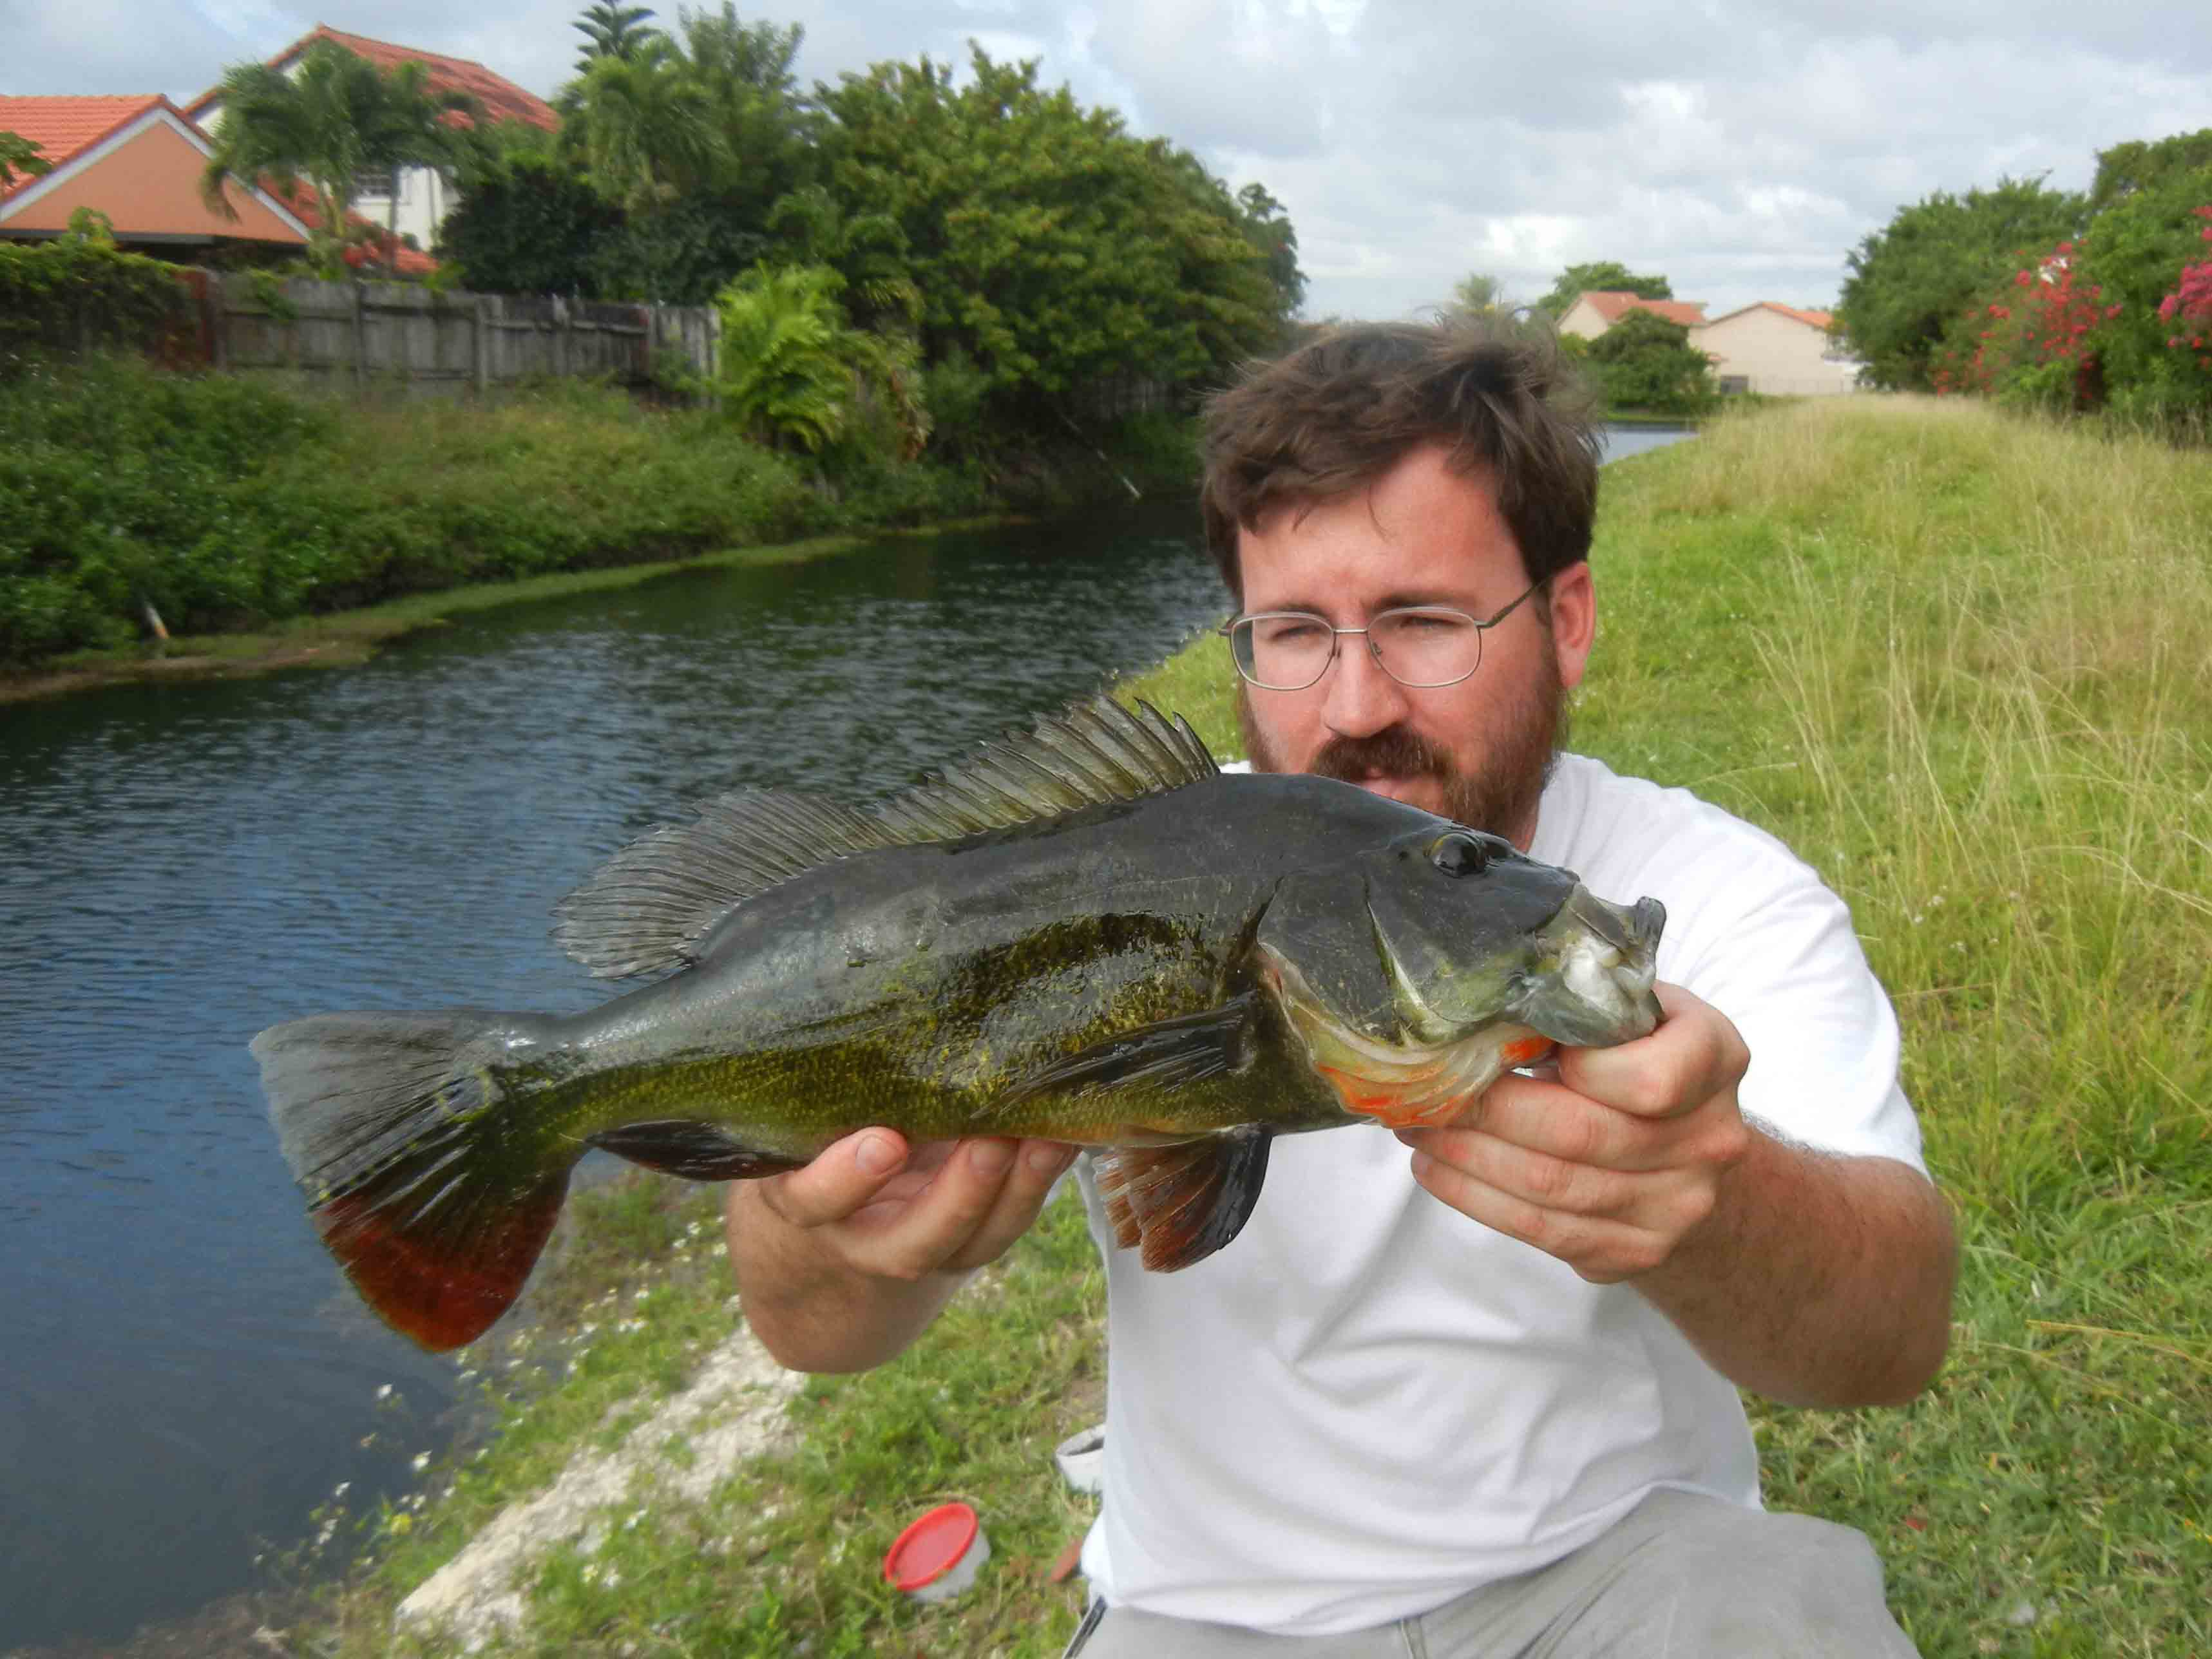 Freshwater jewel fish - Author With A Peacock Bass Caught On A Small Jewel Cichlid